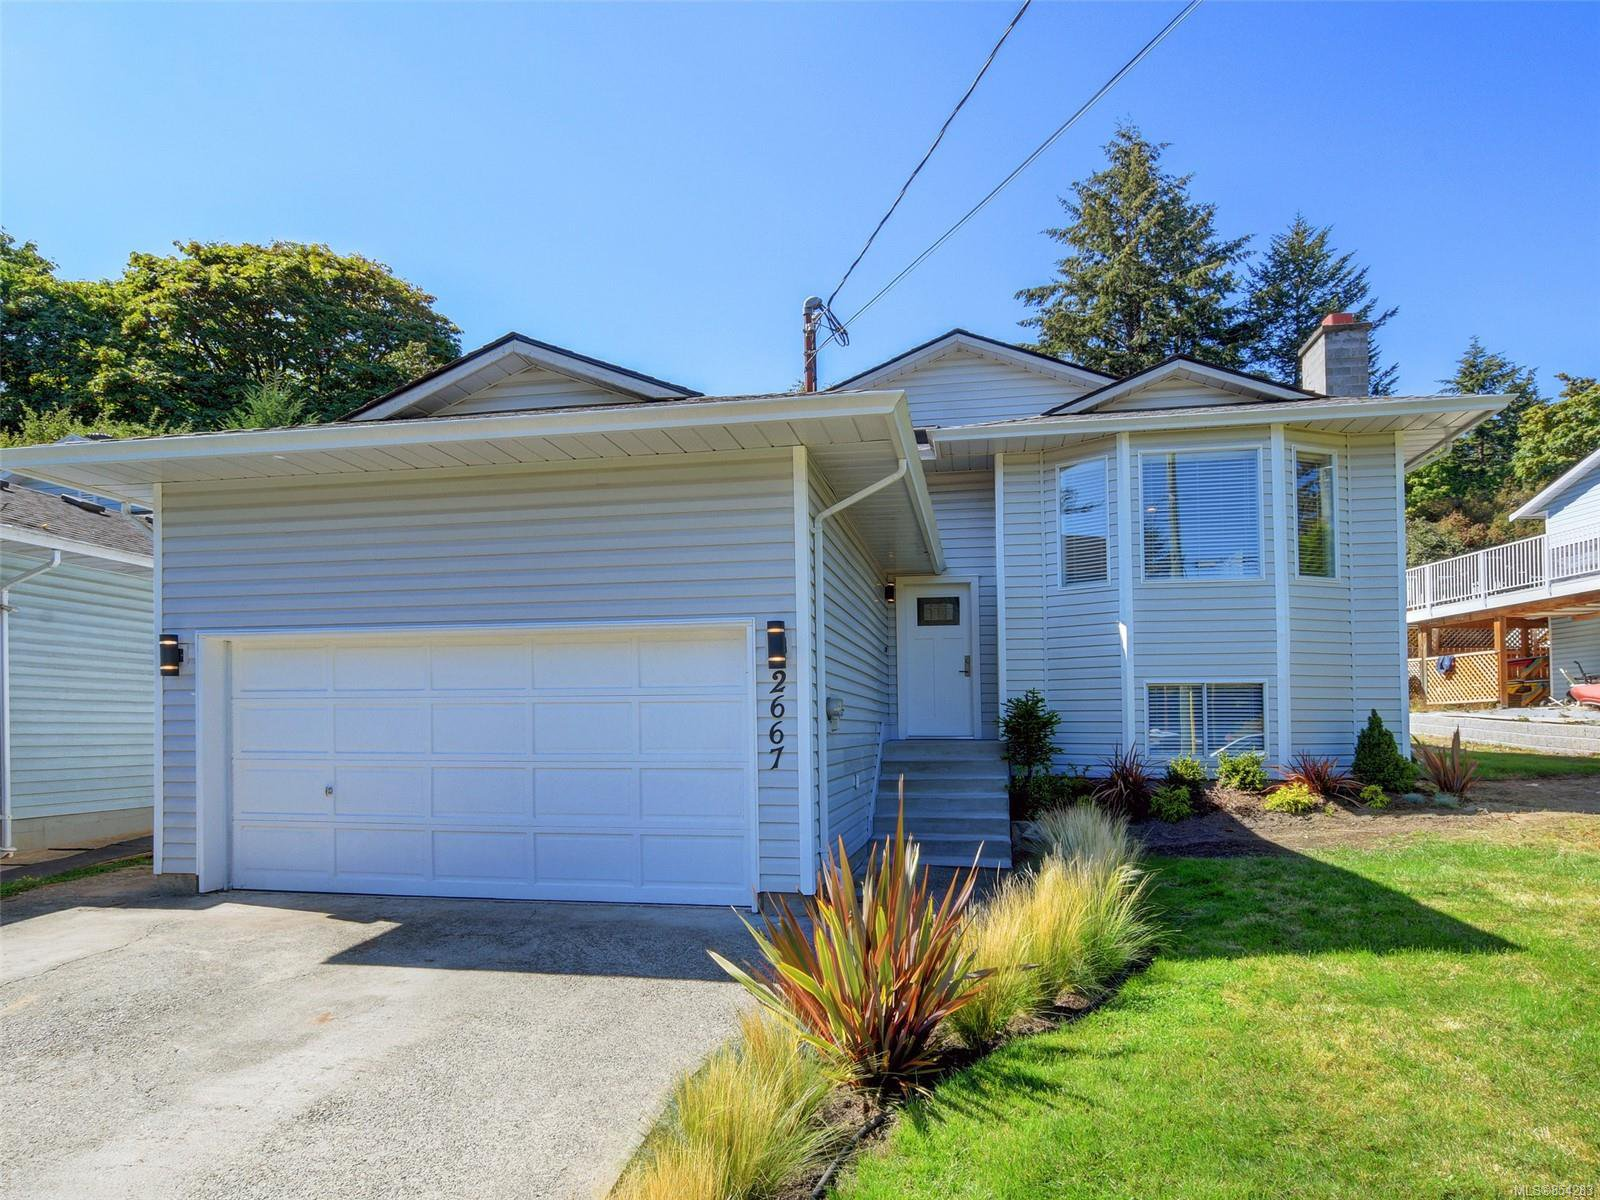 Main Photo: 2667 Myra Pl in : VR Six Mile Single Family Detached for sale (View Royal)  : MLS®# 854283